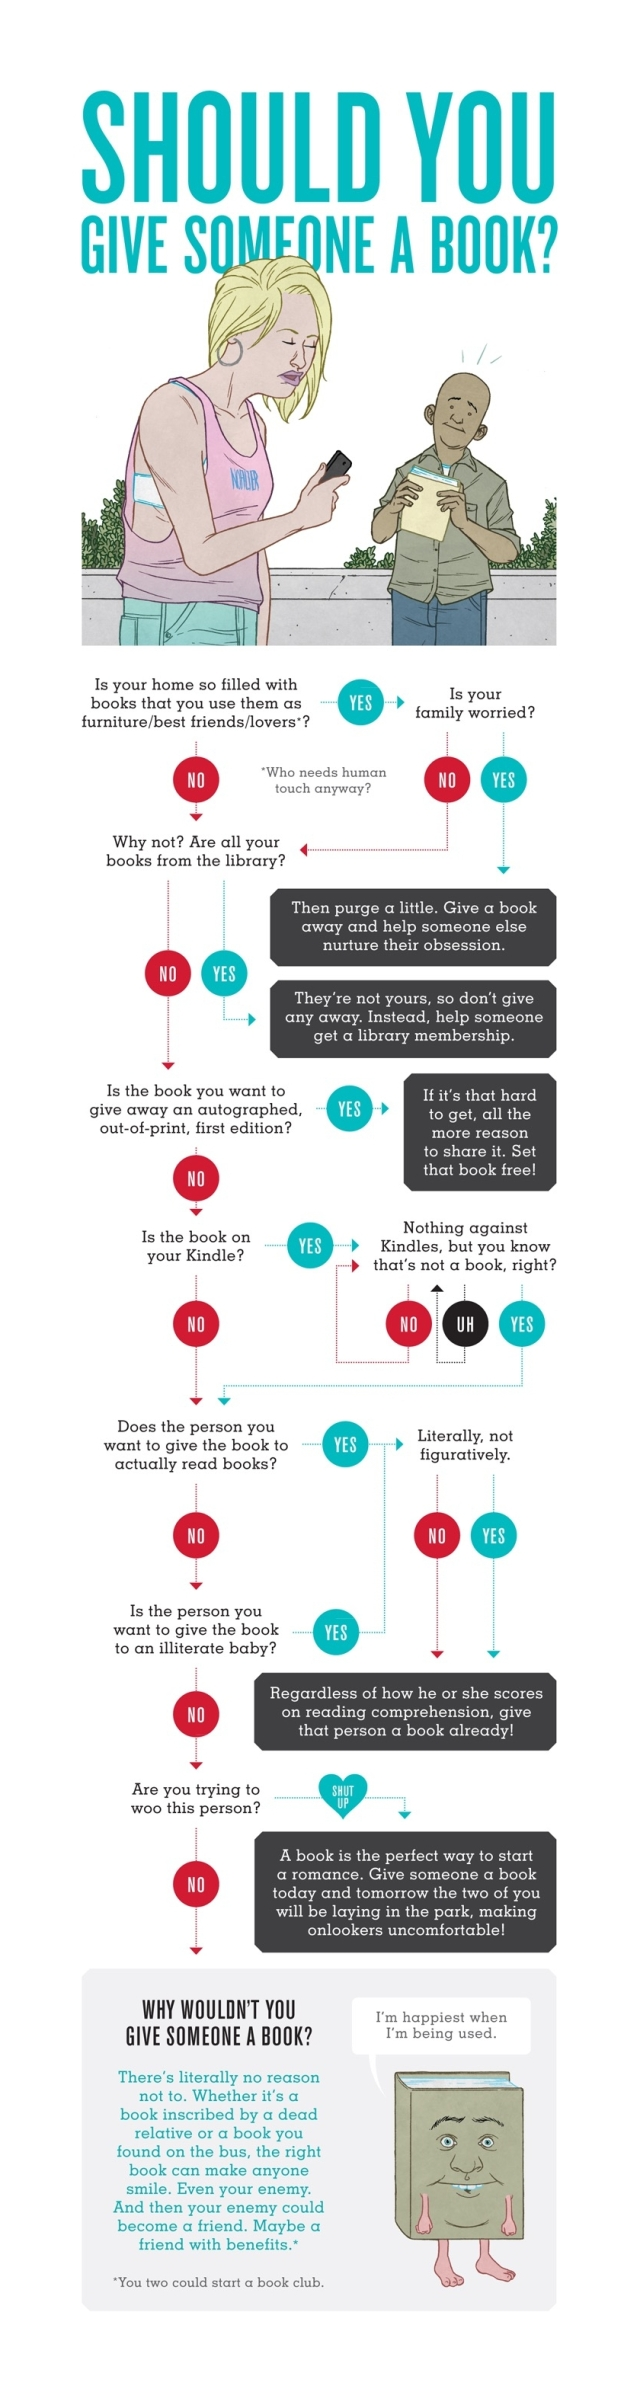 Should-I-give-someone-a-book-infographic